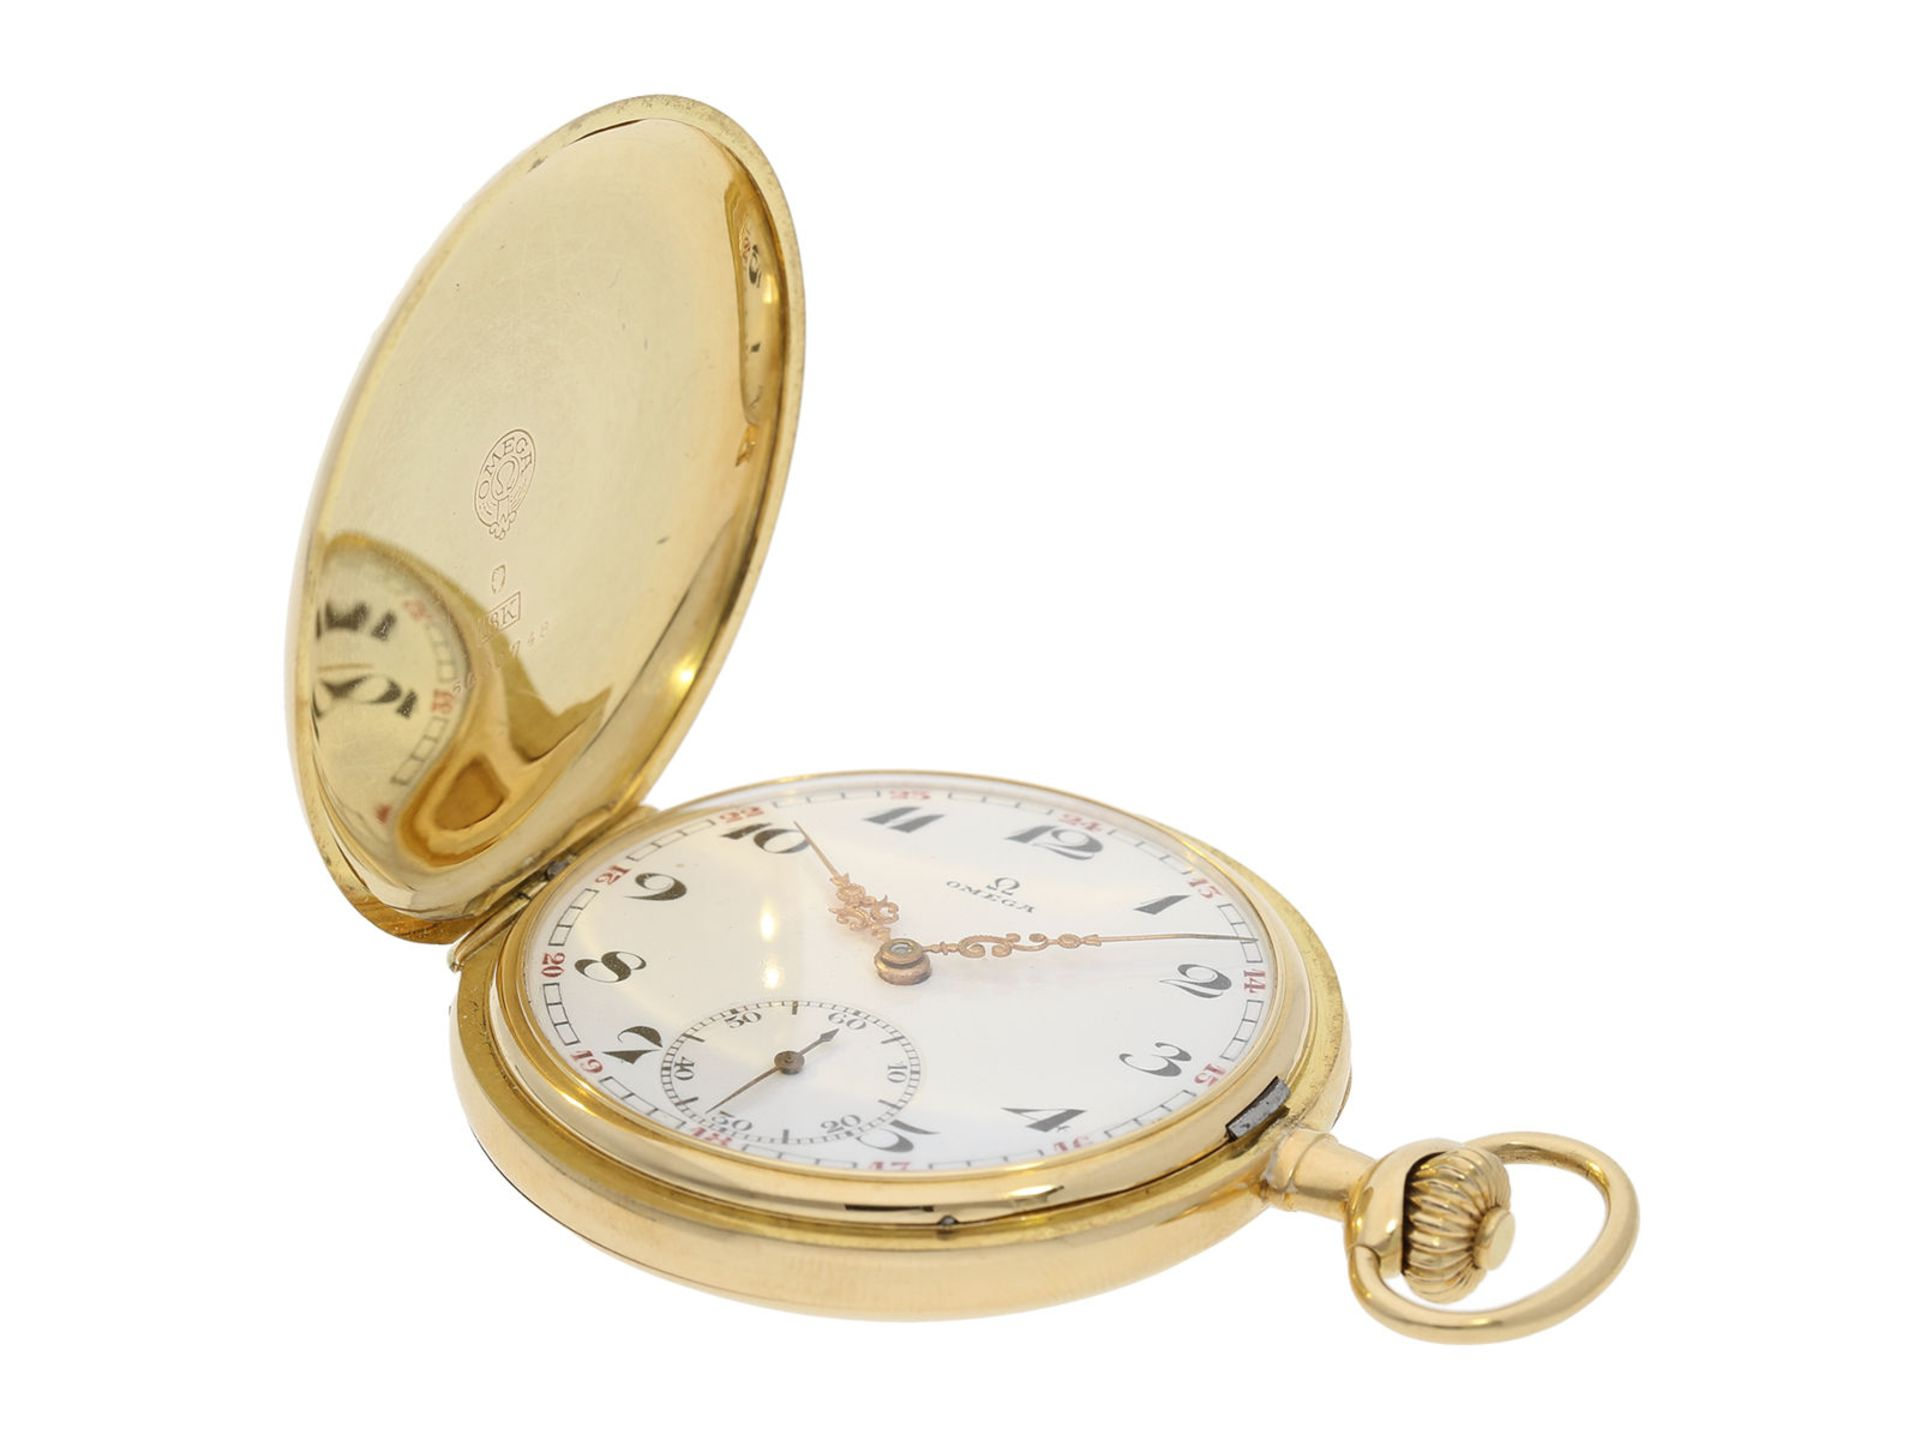 Pocket watch: Omega gold hunting case watch, ca. 1912 - Bild 4 aus 8